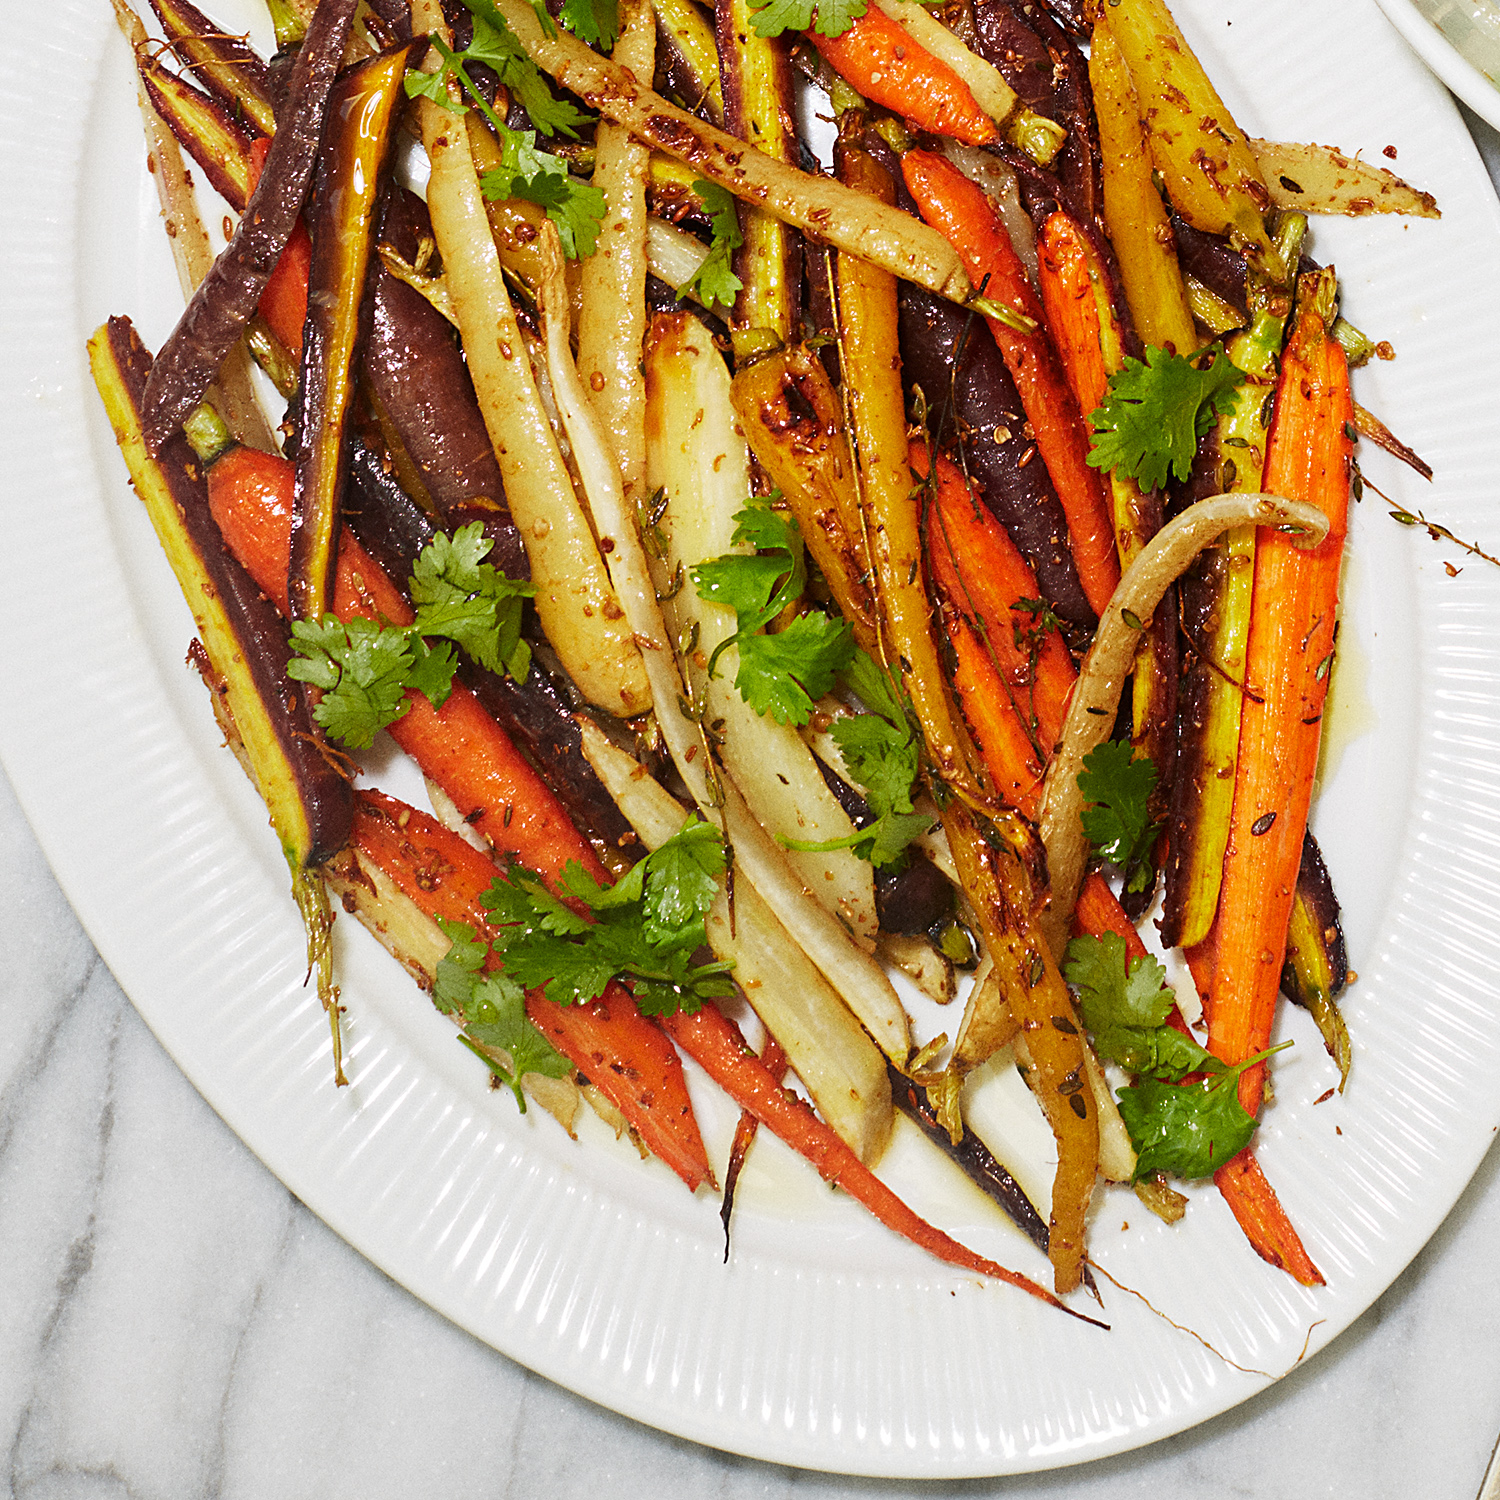 Roasted Heirloom Carrots with Coriander